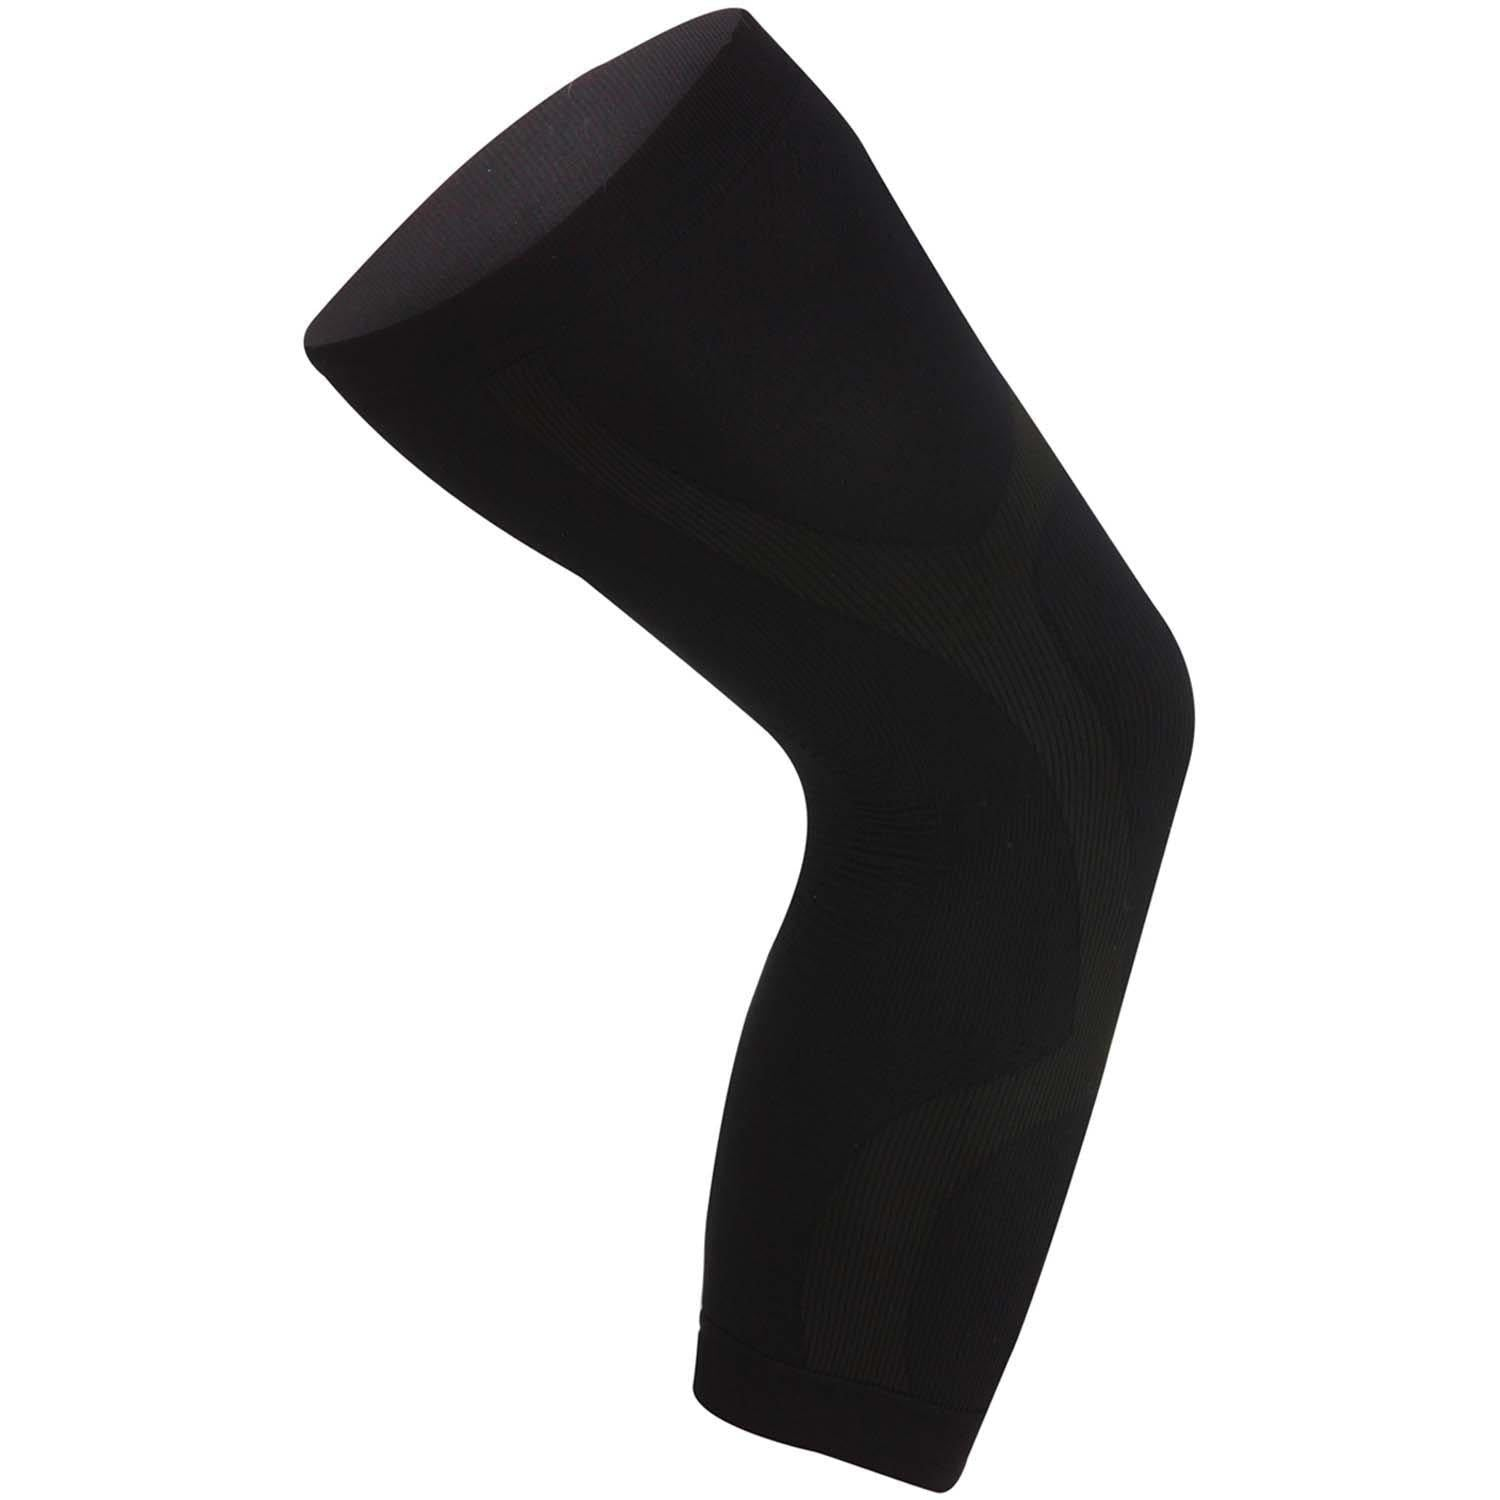 Sportful-Sportful 2nd Skin Knee Warmers-Black-S/M-SF0179700209-saddleback-elite-performance-cycling